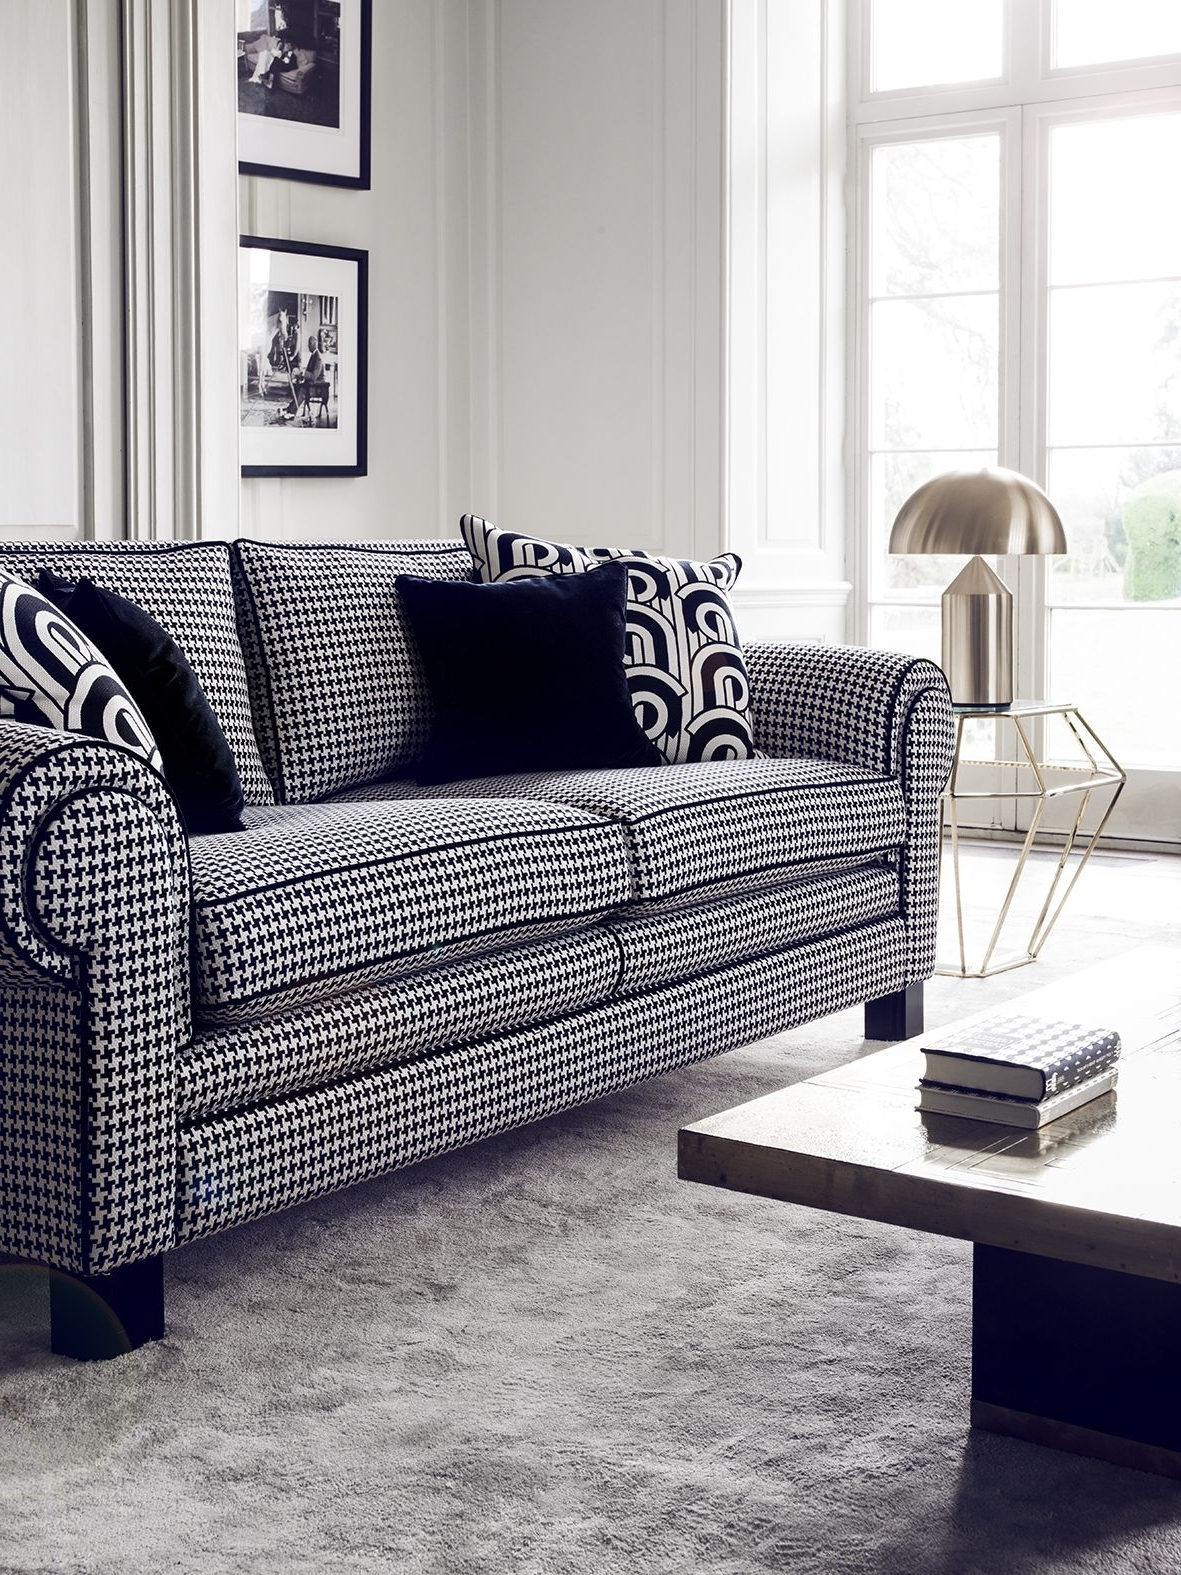 Latest Large Sofa Chairs Within Coco Large Sofa Expertly Manufacturedbritish Brand And (View 14 of 15)